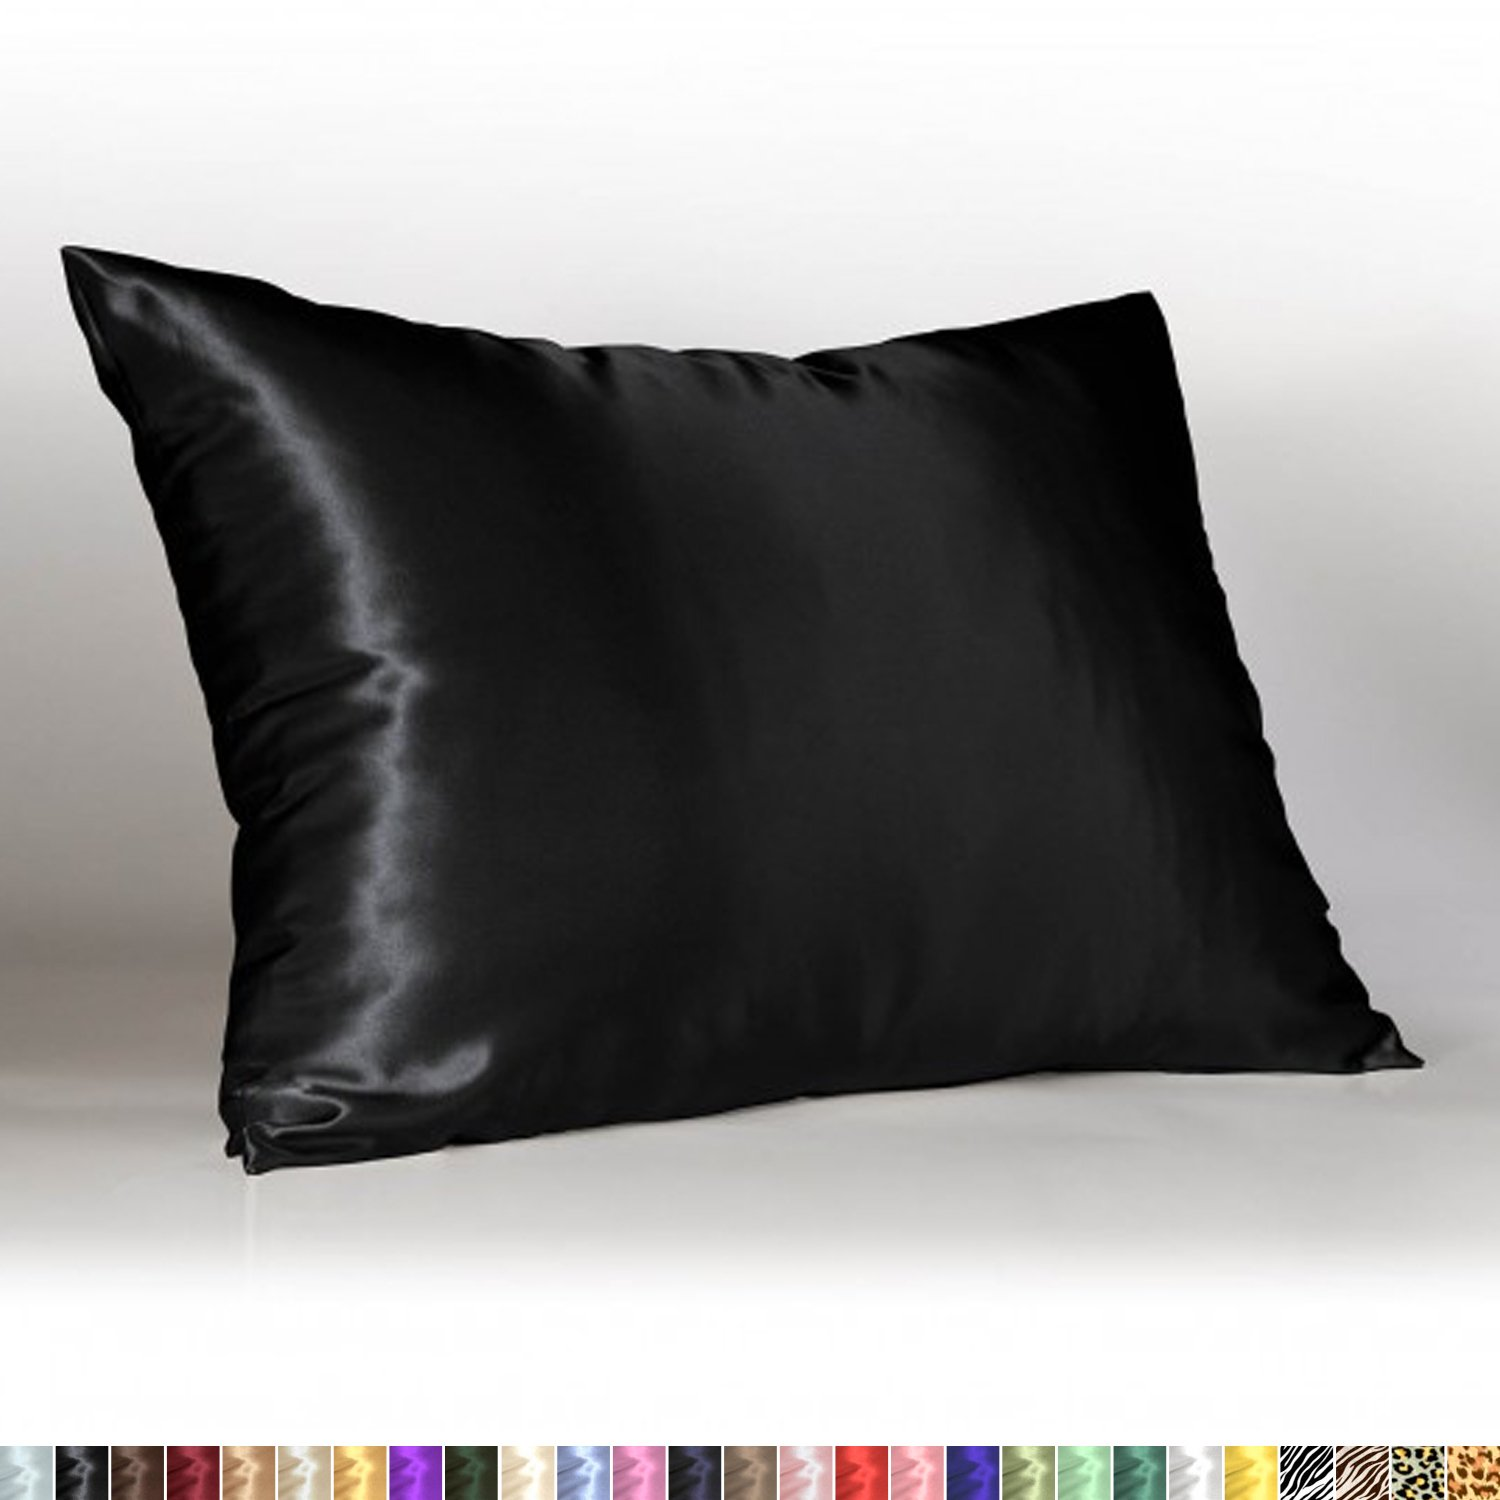 Sweet Dreams - Blissford Luxury Satin Pillowcase with Zipper, King Size, Black (Silky Satin Pillow Case for Hair) By Shop Bedding (1-Pack)